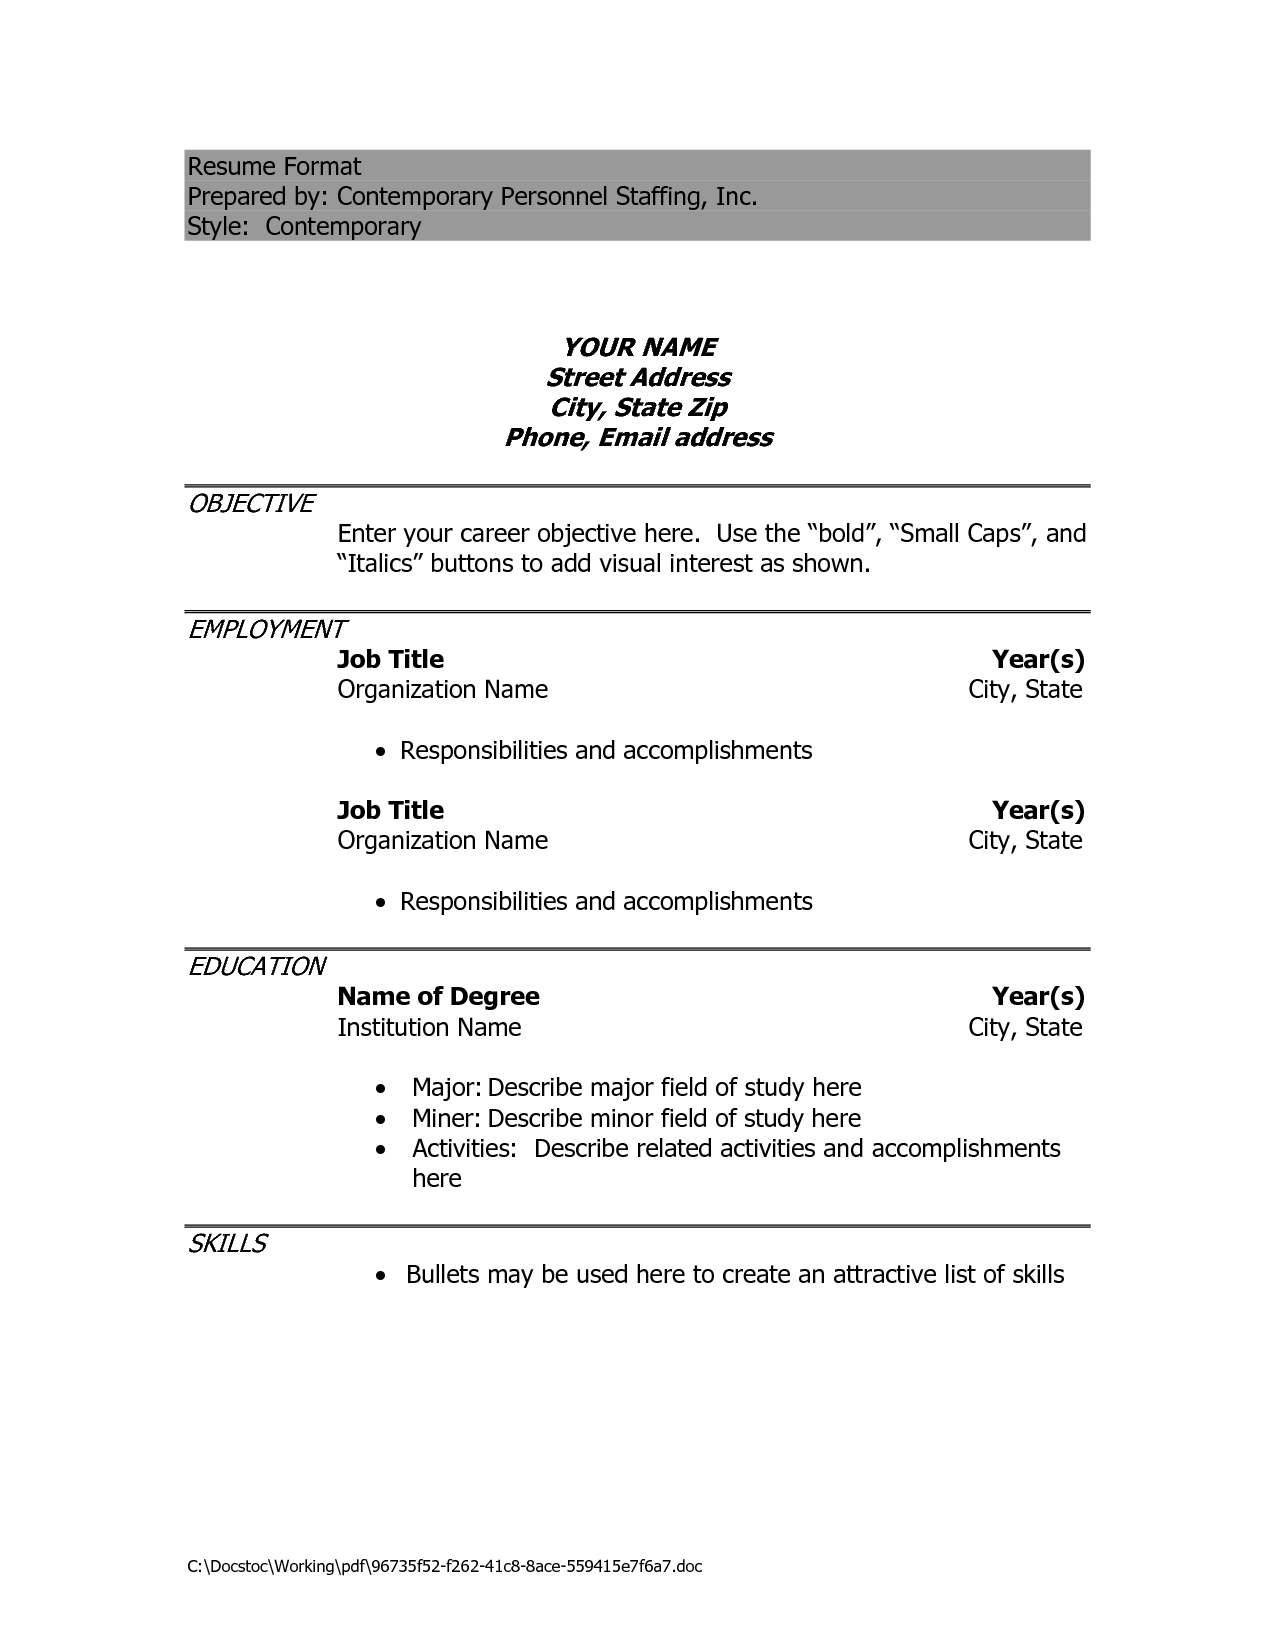 Resume Format For Teachers Doc File Best Of Profesional Cv Photos And Gallery Resume Free Cv Template Word Cover Letter For Resume